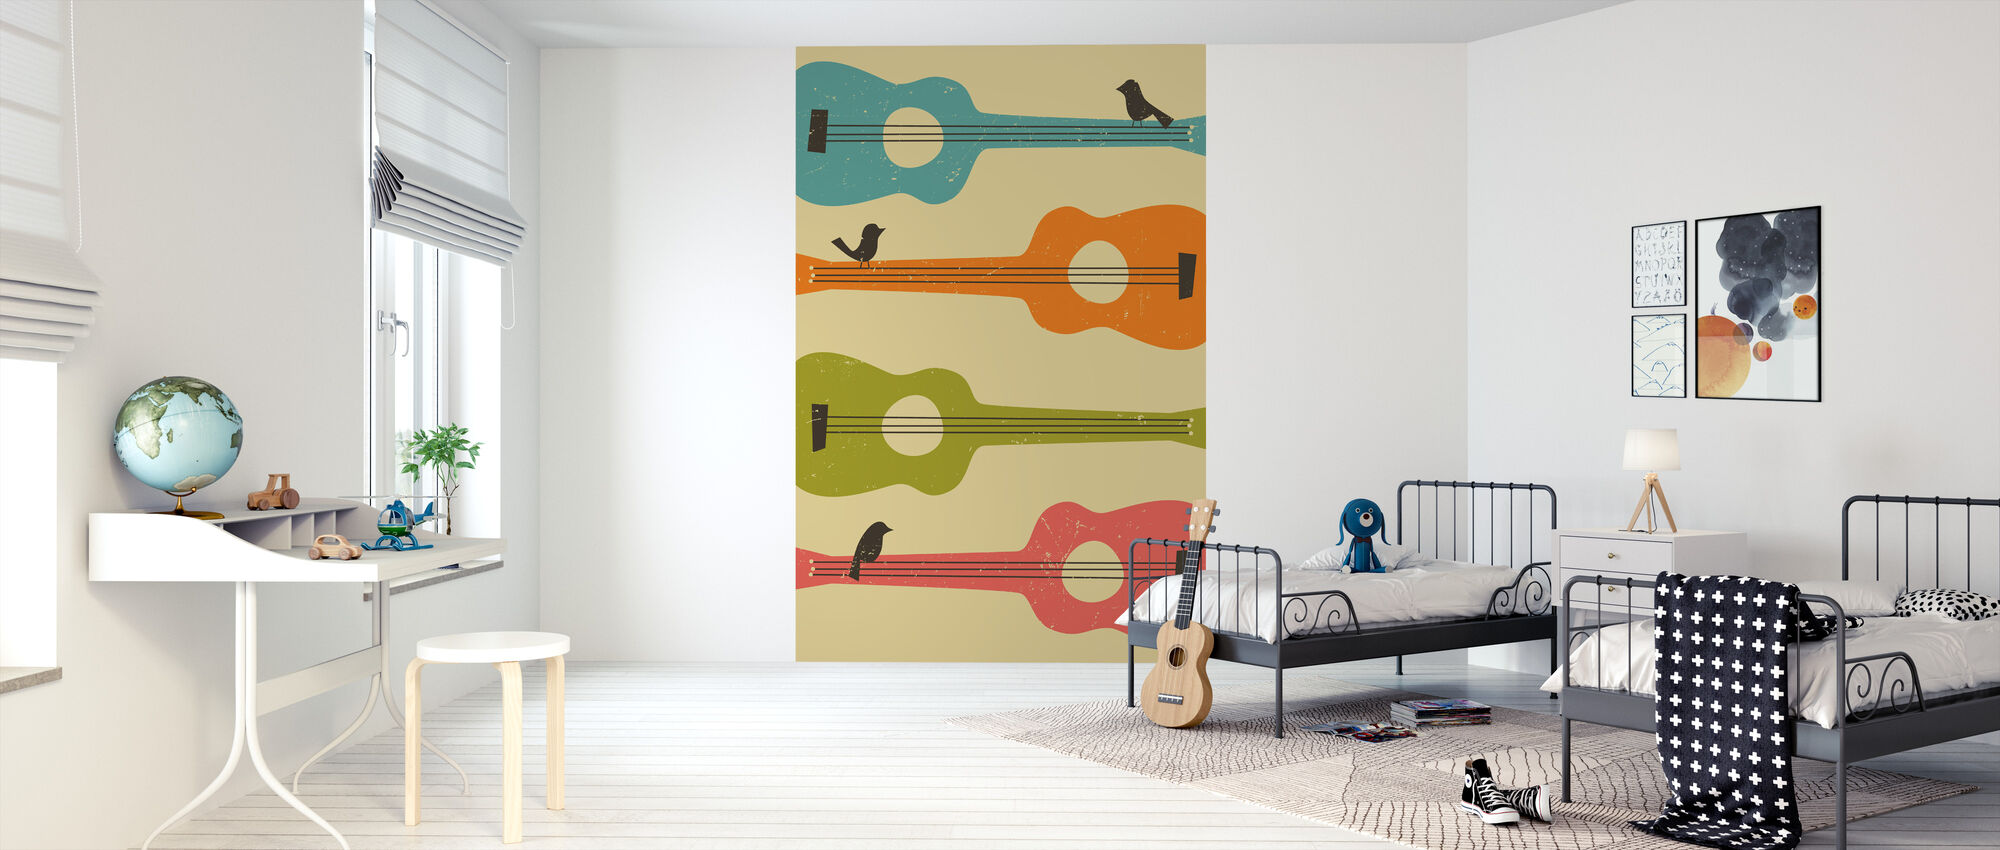 Birds on a Guitar - Wallpaper - Kids Room